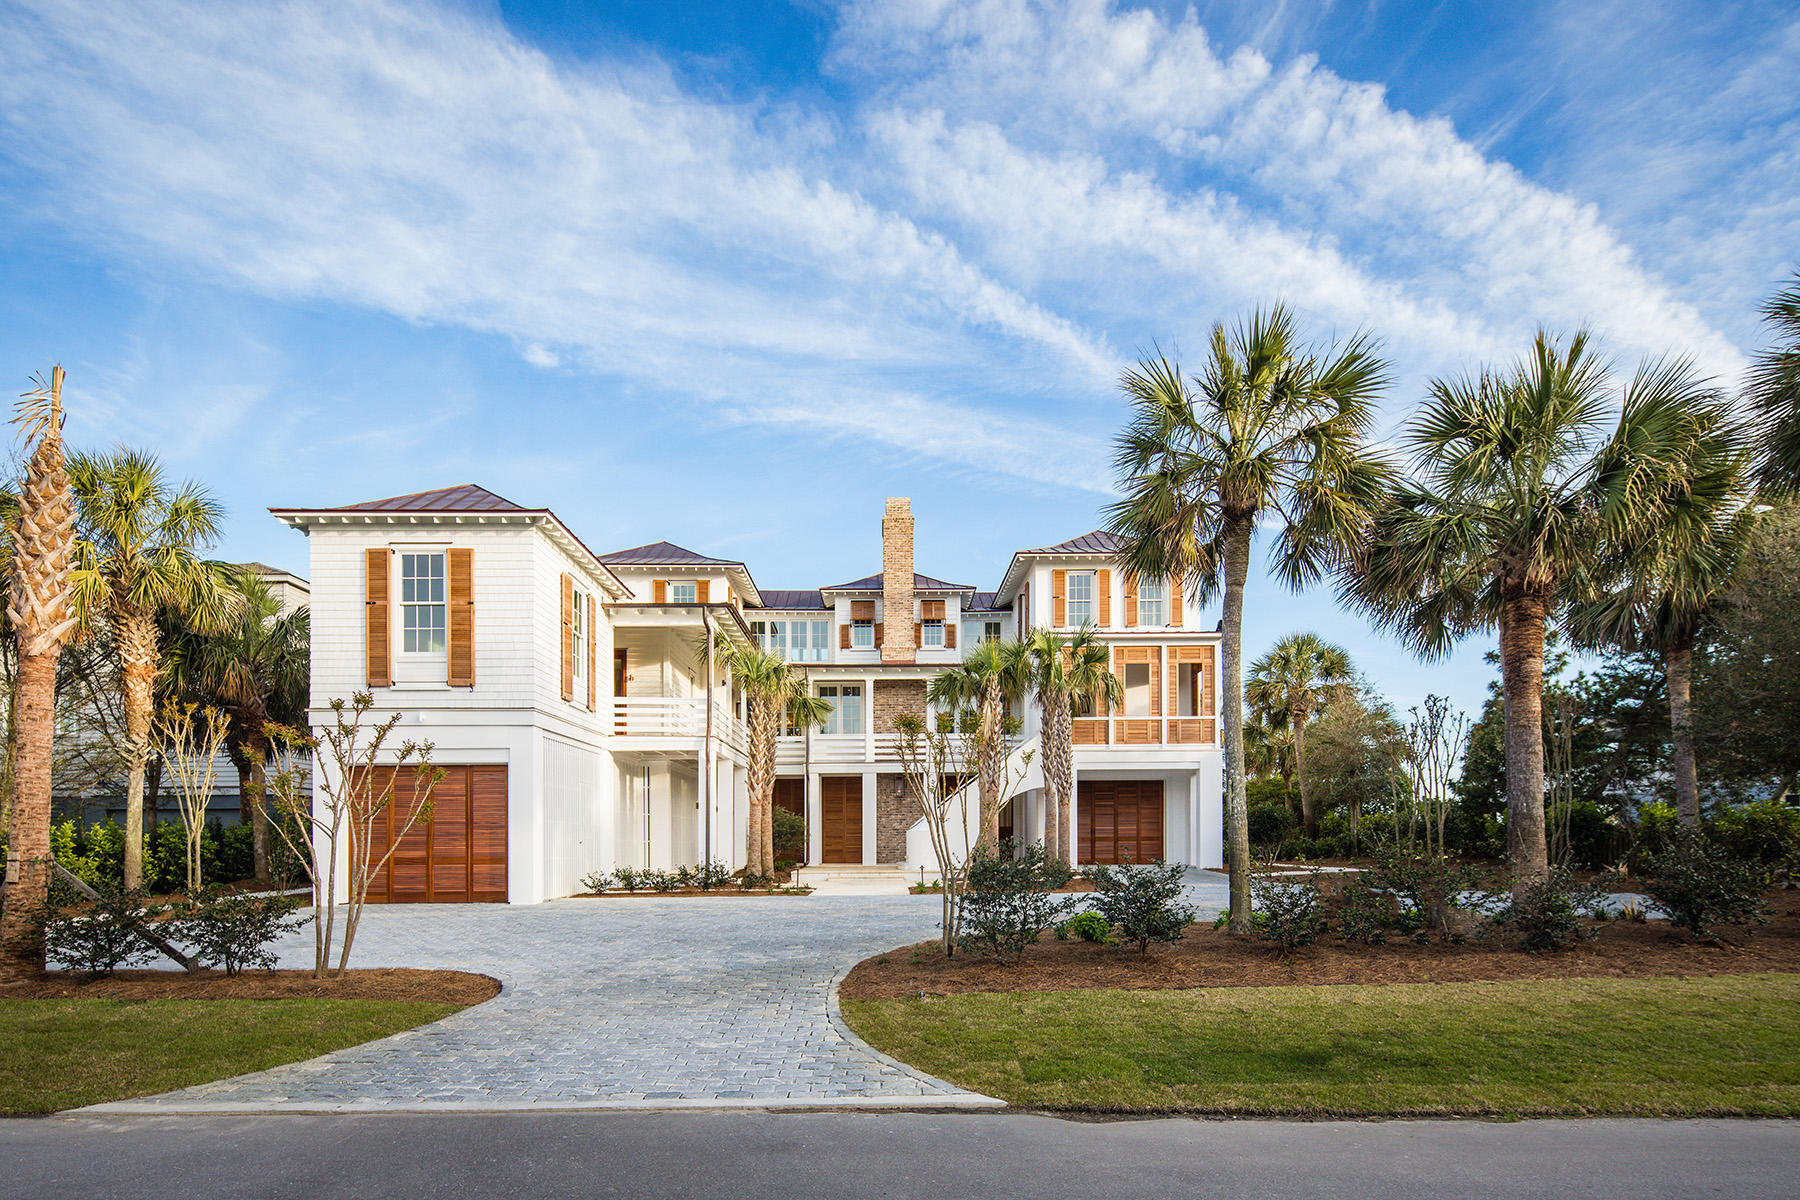 Photo of 2619 Bayonne St, Sullivan's Island, SC 29482